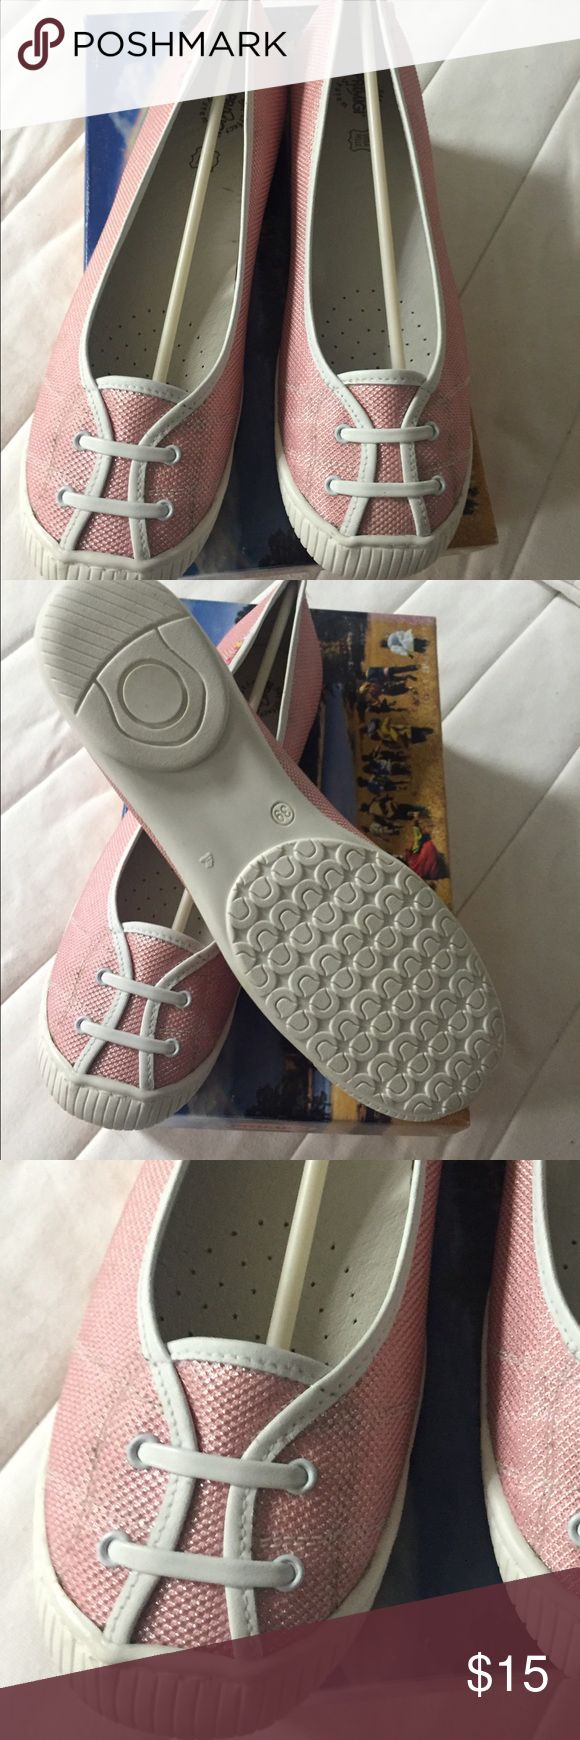 Primigi pink shoes Very comfortable pink flat shoes. New in a box Primigi Shoes Flats & Loafers